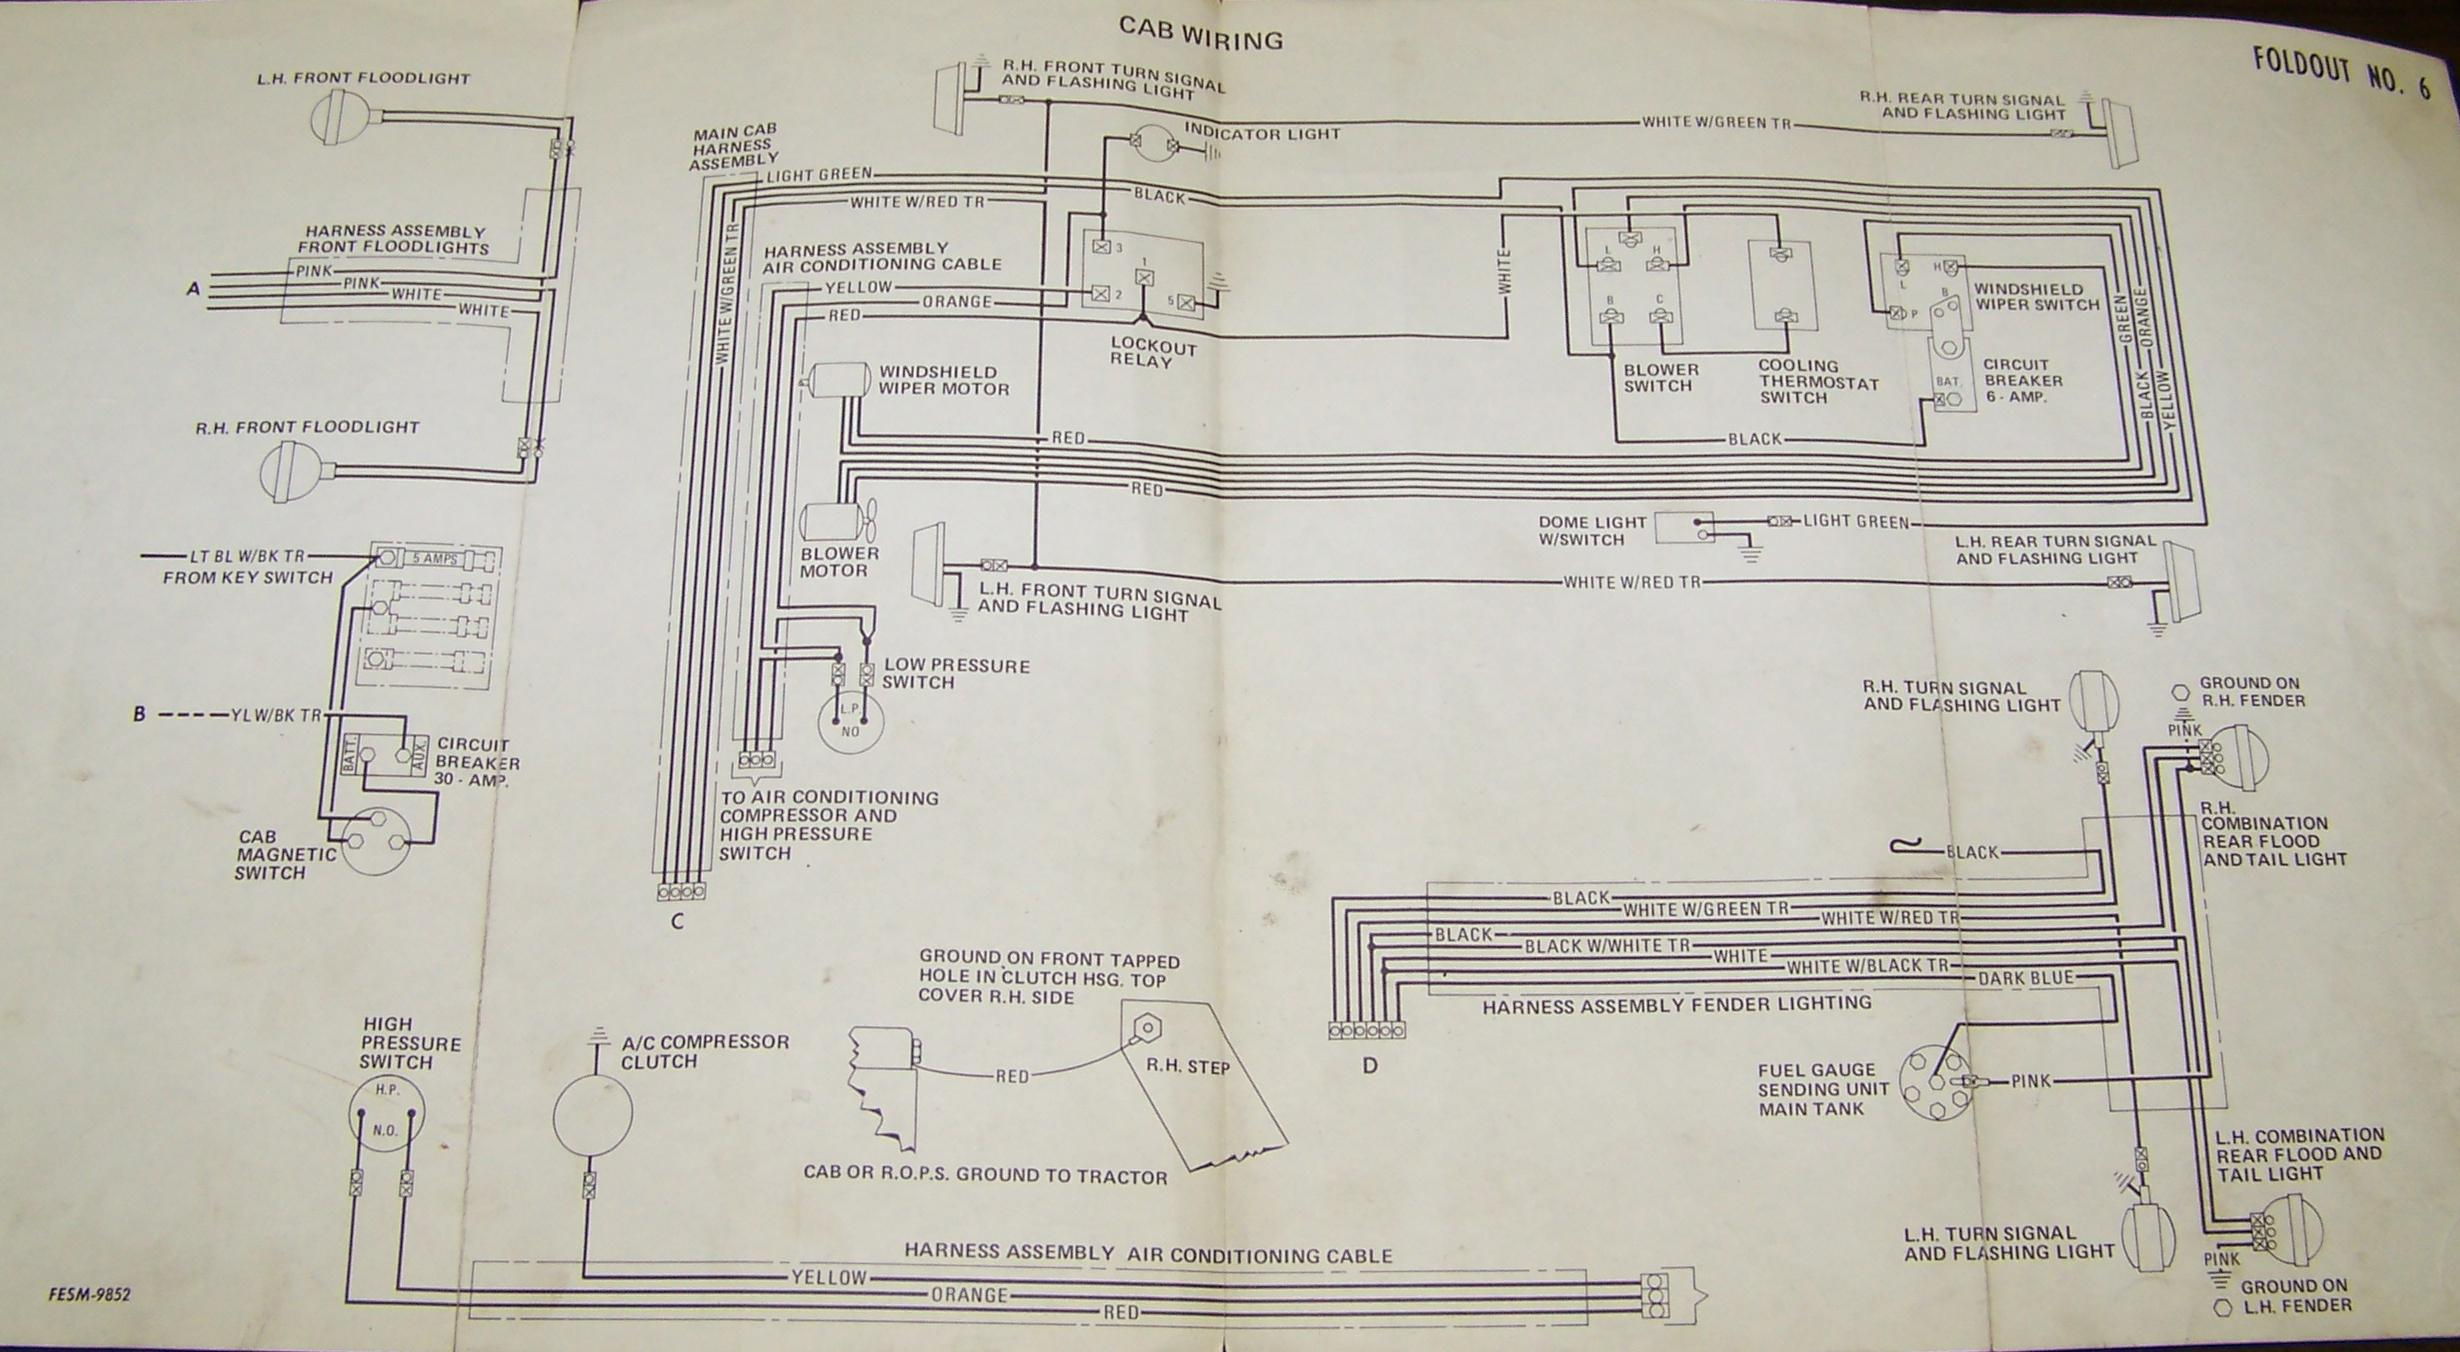 farmall 656 wiring diagram carter & gruenewald co. inc. - ih-farmall tractor ... international 656 wiring diagram